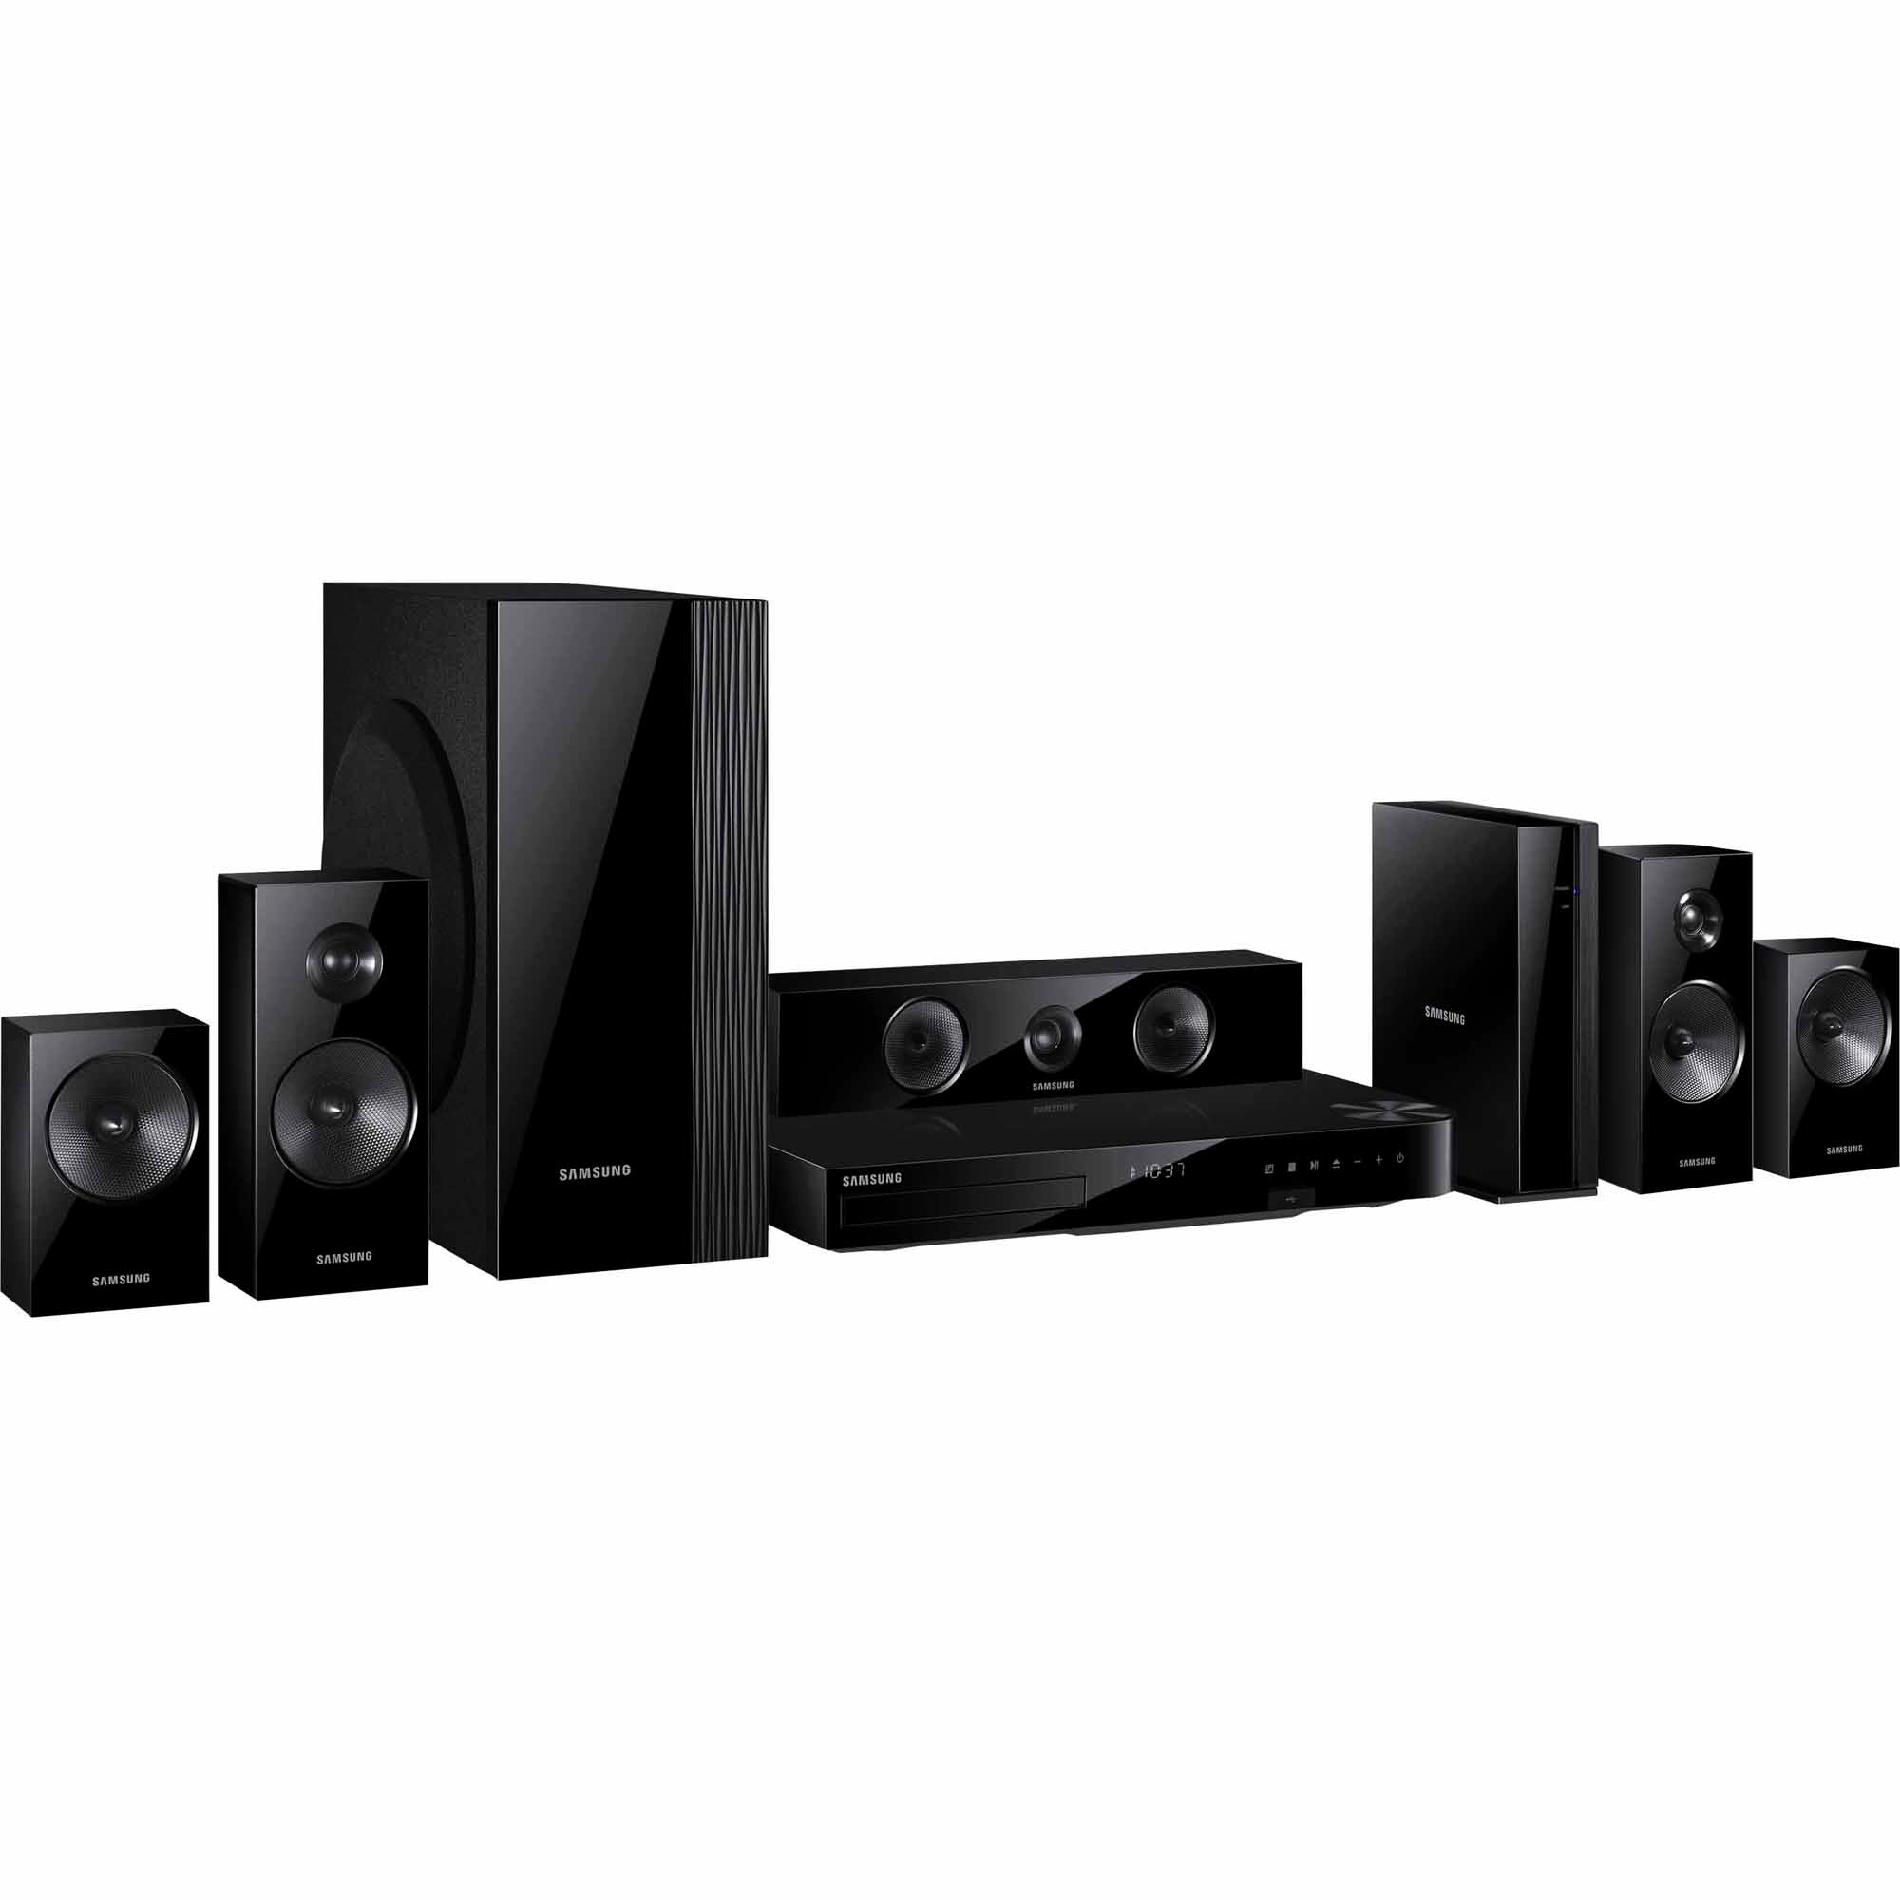 Samsung 5.1 Channel 1000W Home Theater System with 3D Blu-ray and Wi-Fi - HT-H5500W